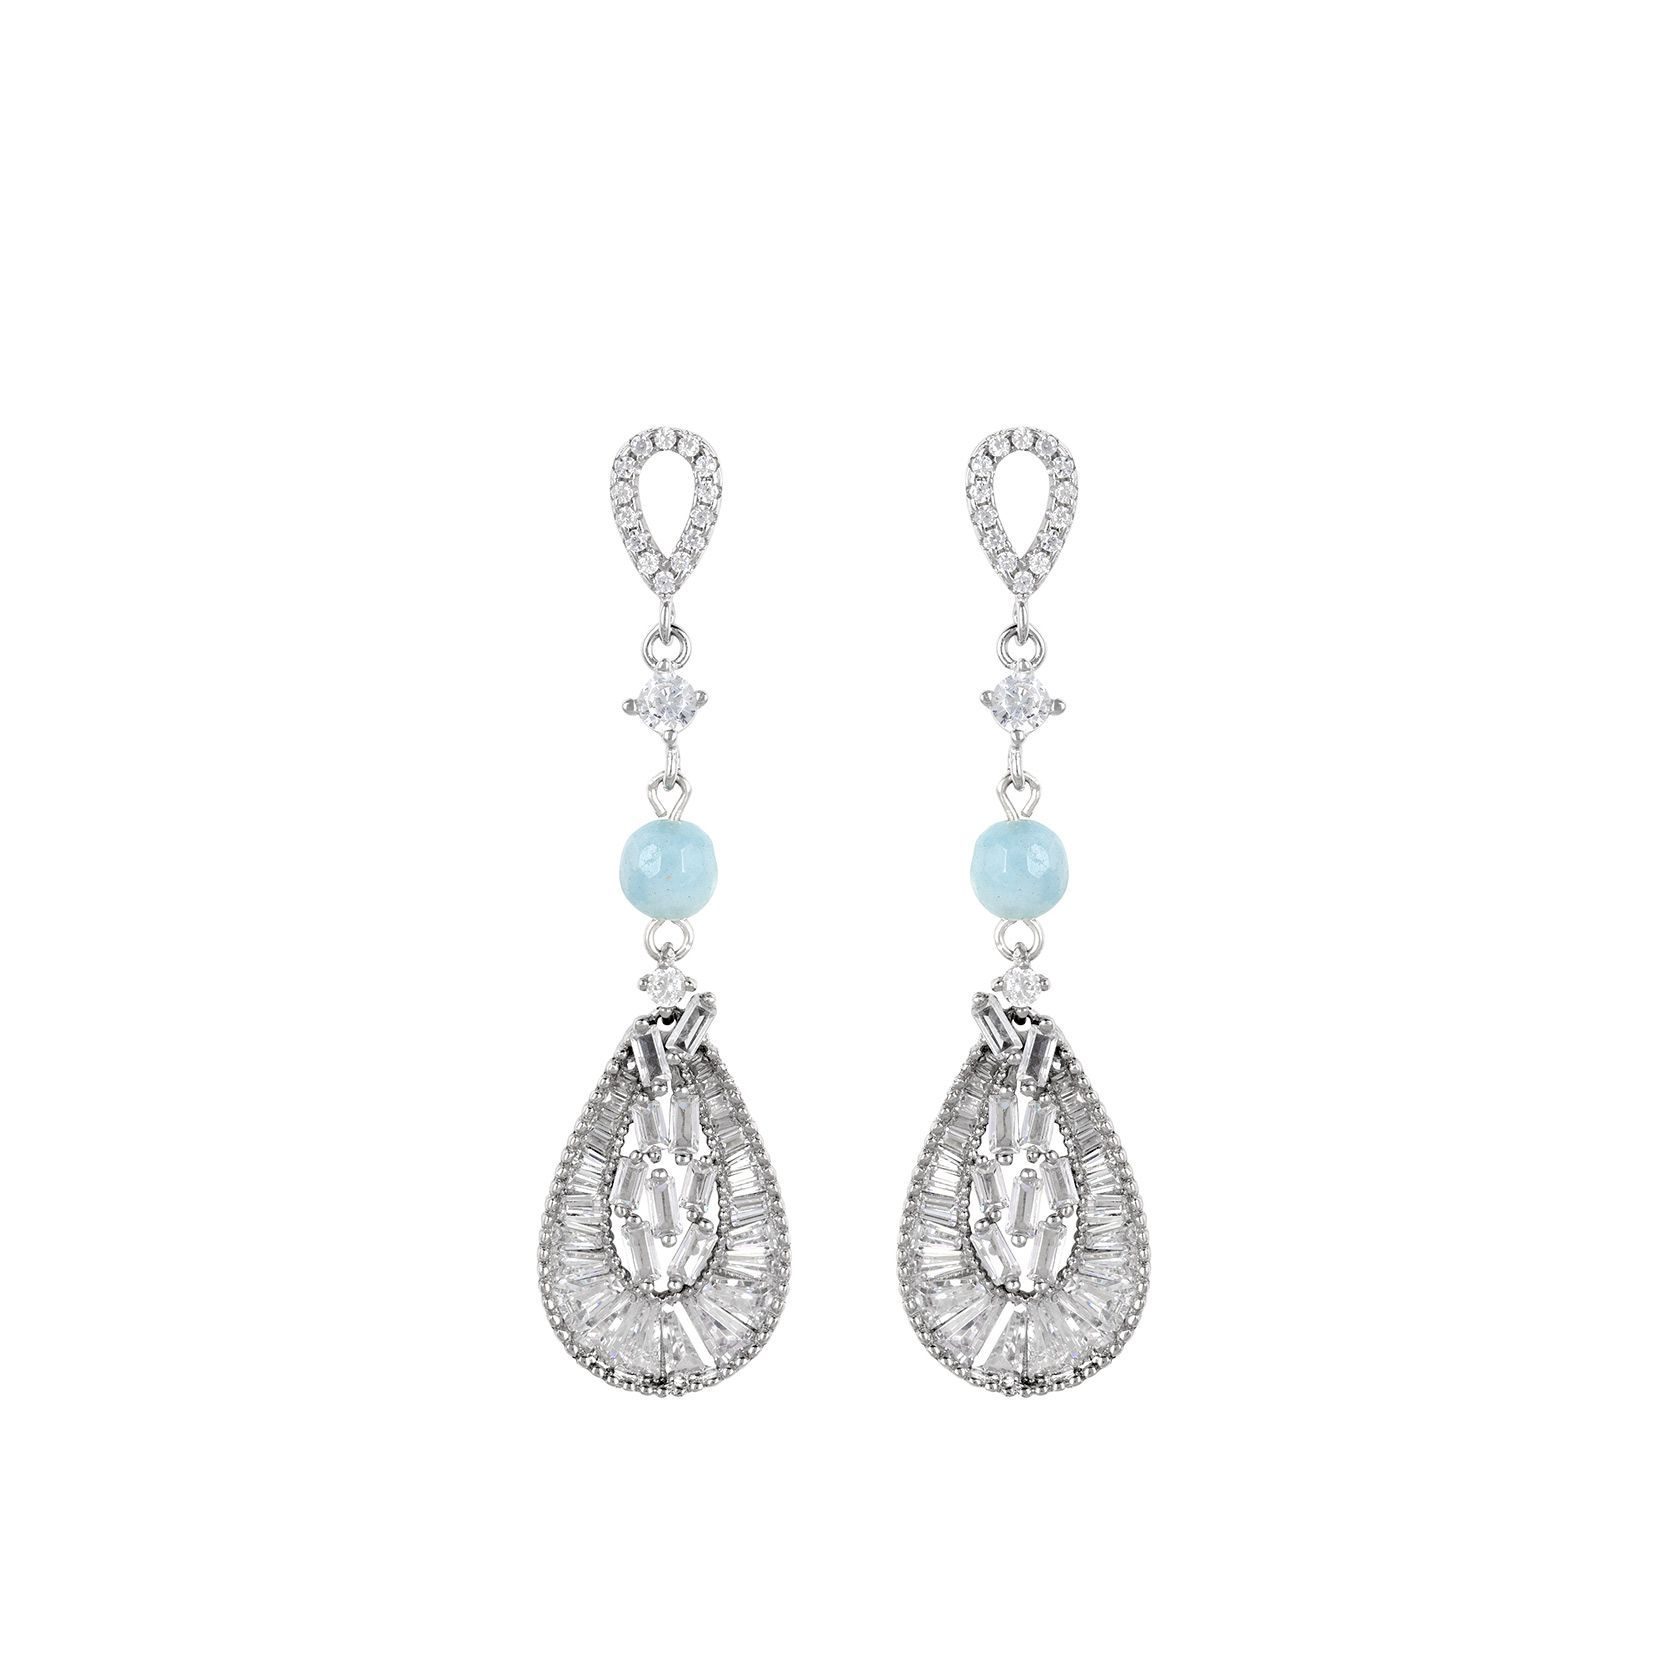 aquamarine and zirconias earrings marybola